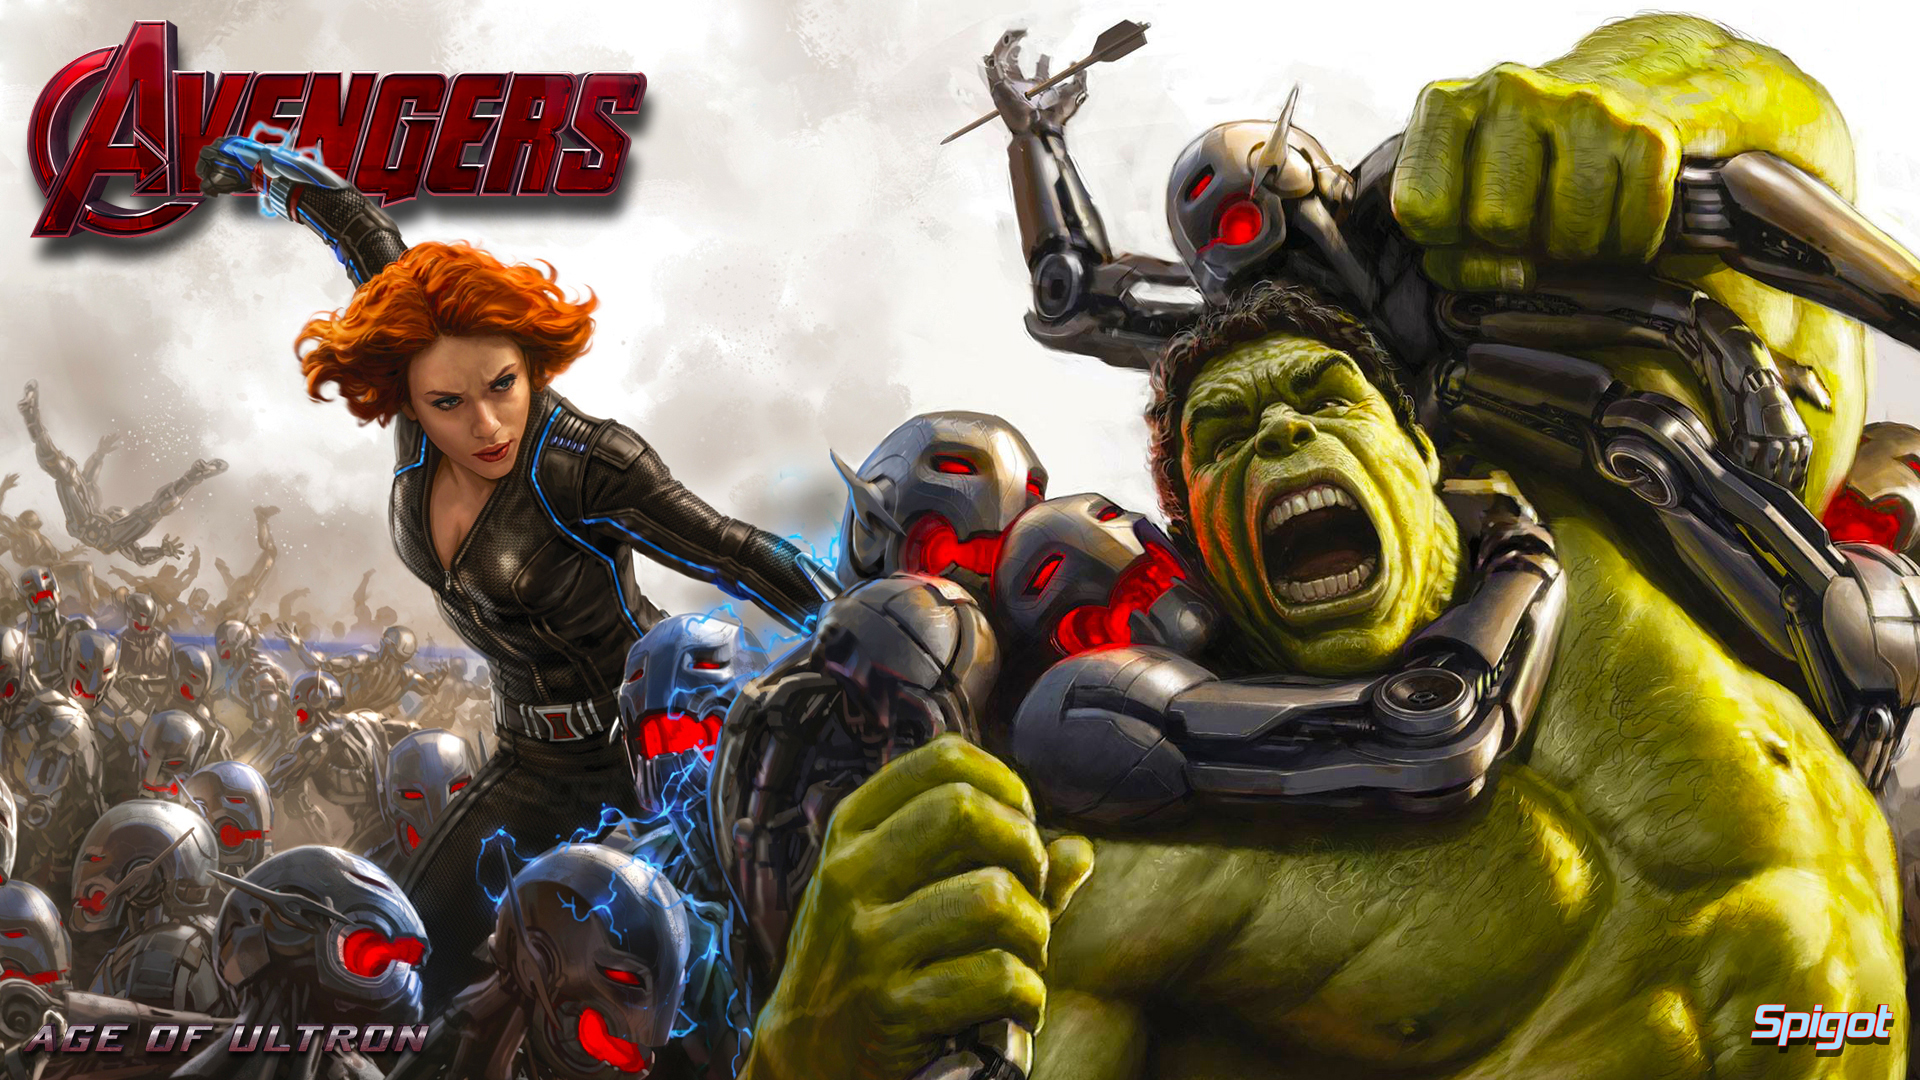 the Avengers: Age of Ultron |Ultron Avengers Age Of Ultron